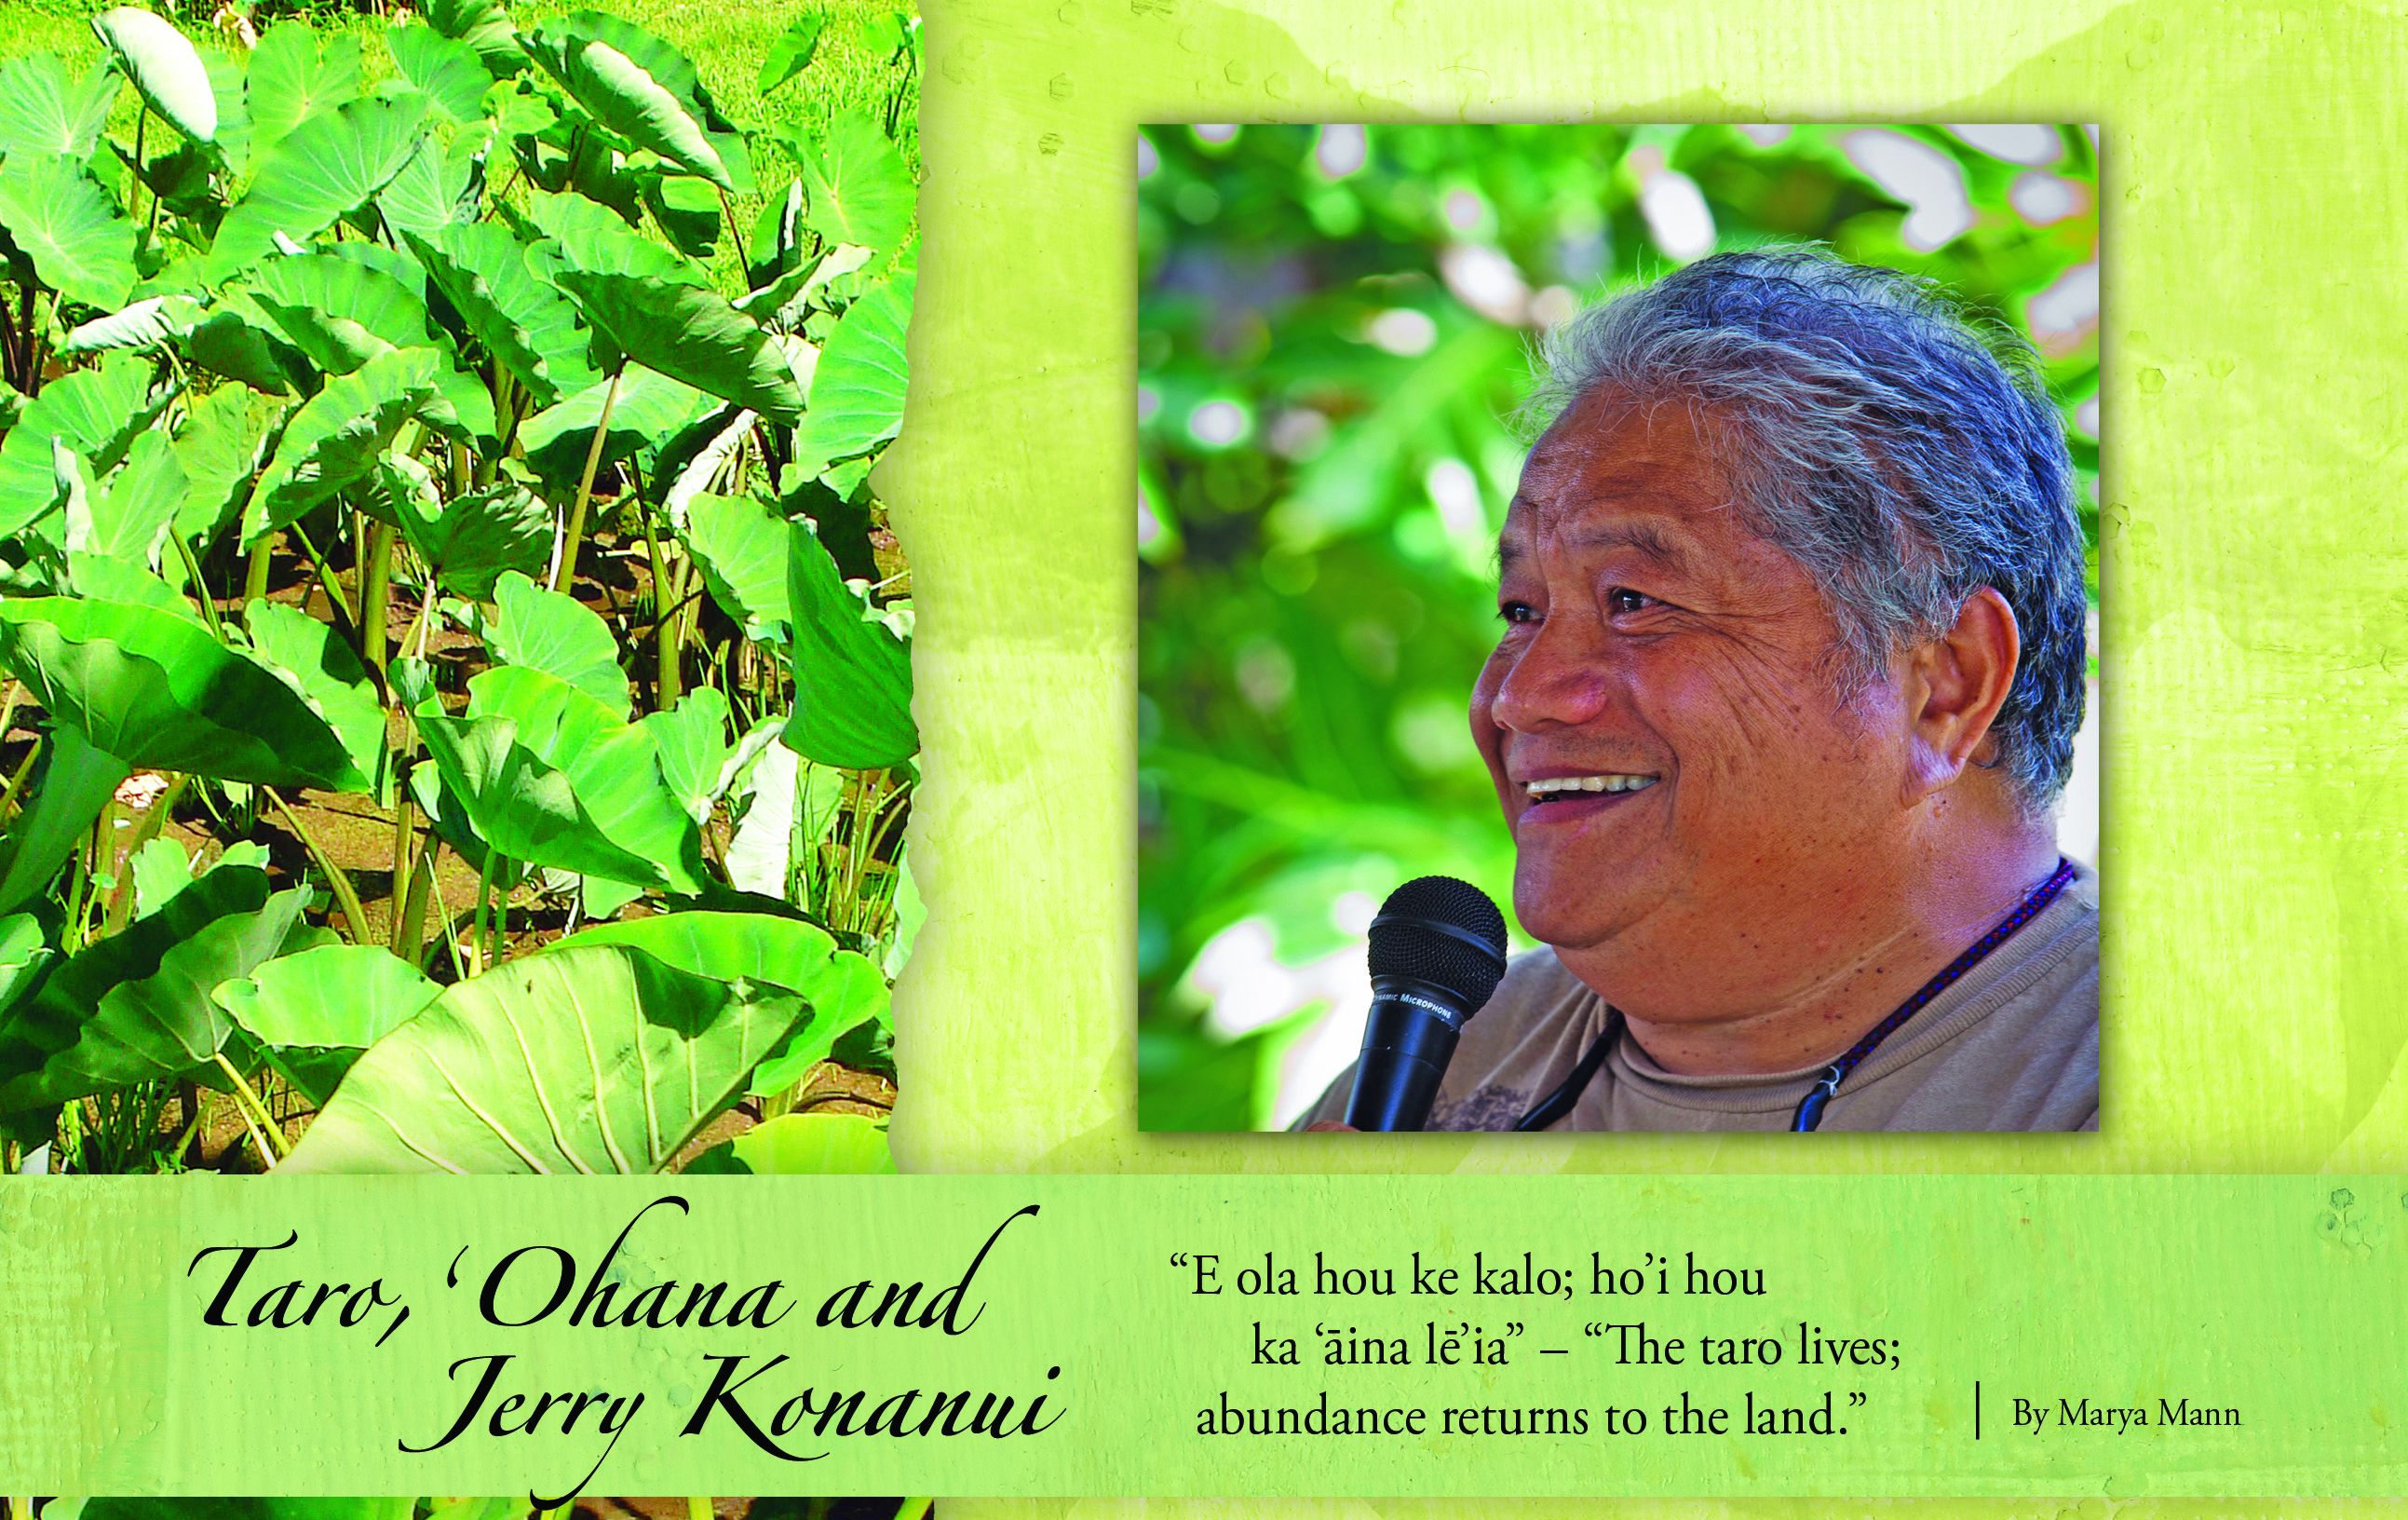 Taro and Jerry Konanui - image